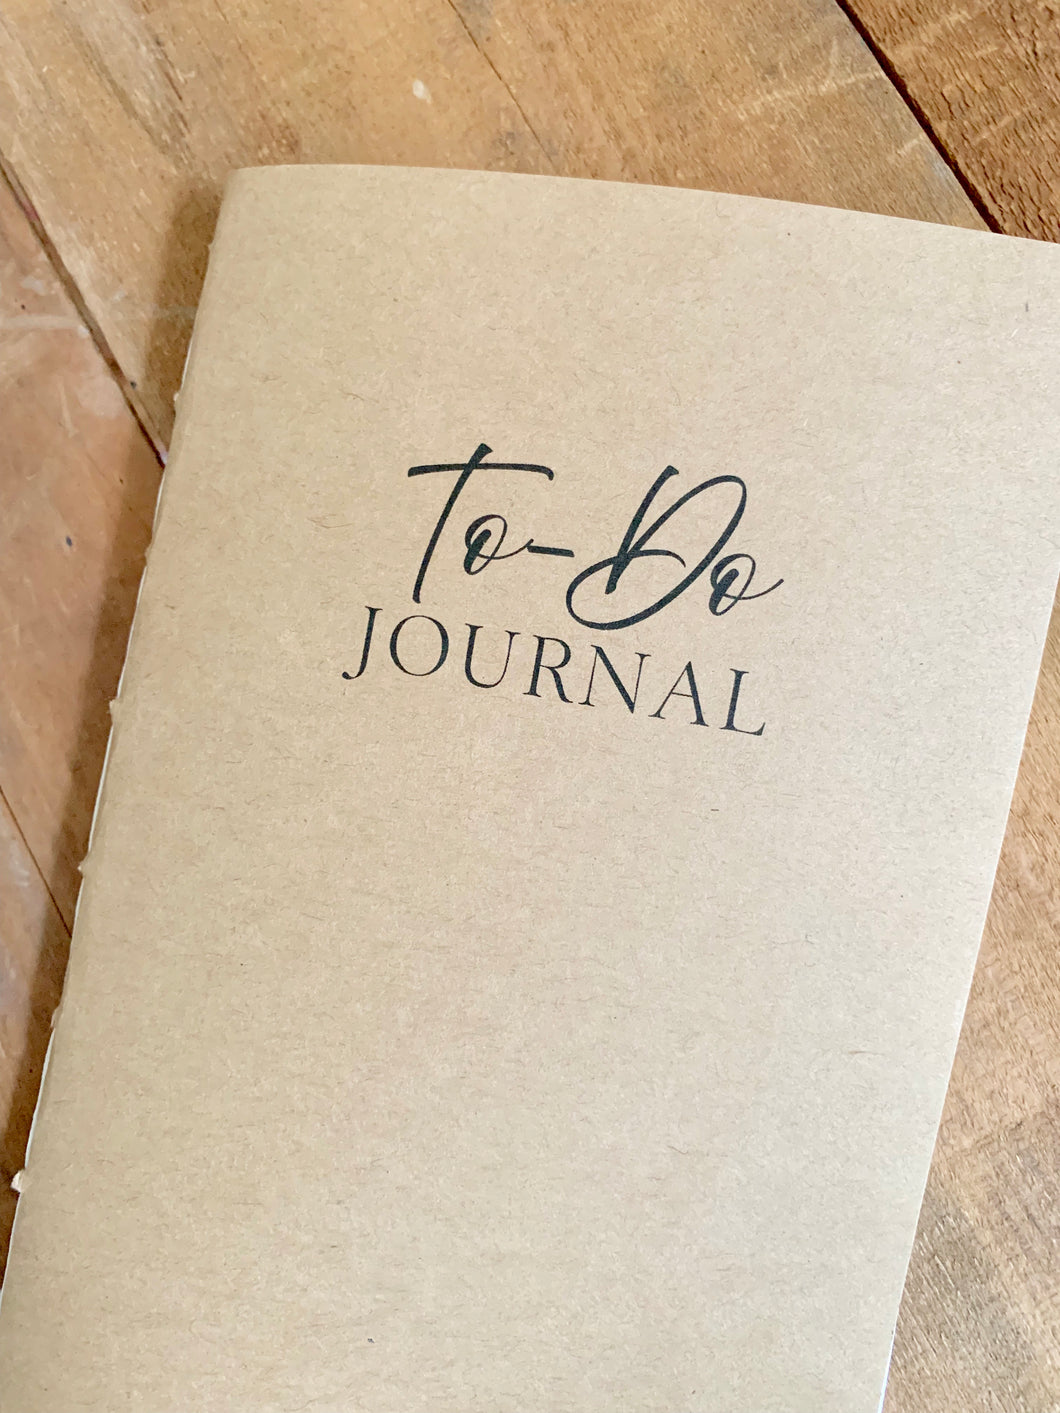 To-do/Notes Journal Insert